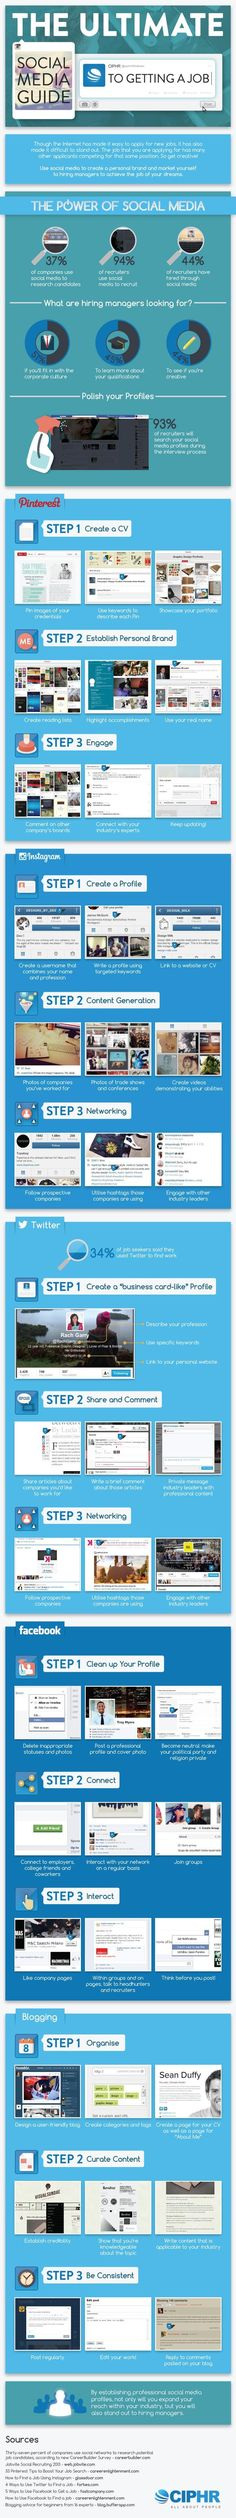 The ultimate Social Media guide to getting a job #infographic